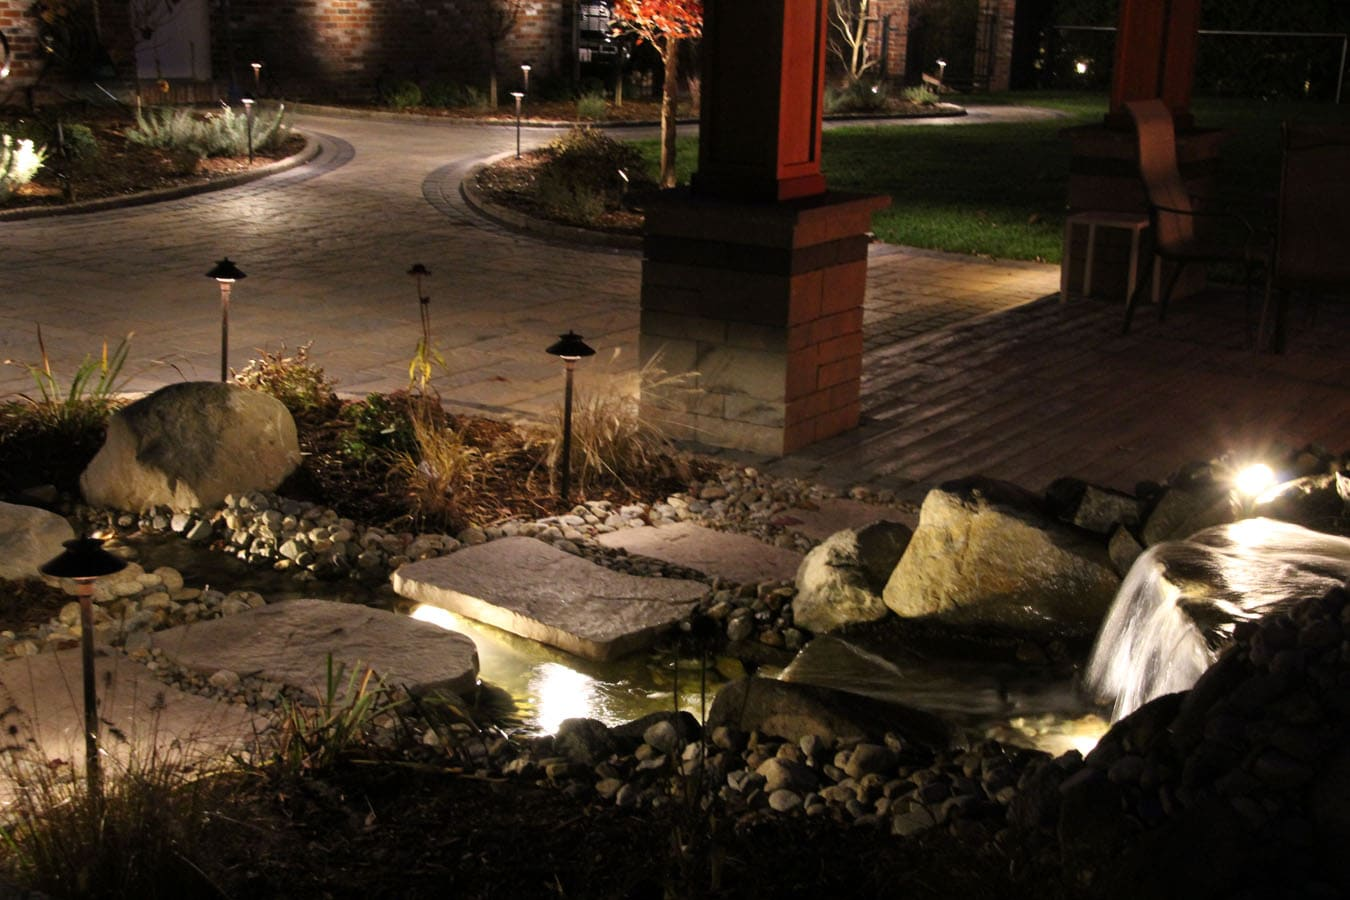 ... of the great outdoor lighting and water feature projects completed with our materials. Click on any image to enlarge and browse through the photos. & Outdoor Lighting u0026 Water Projects by Area Contractors - New ... azcodes.com